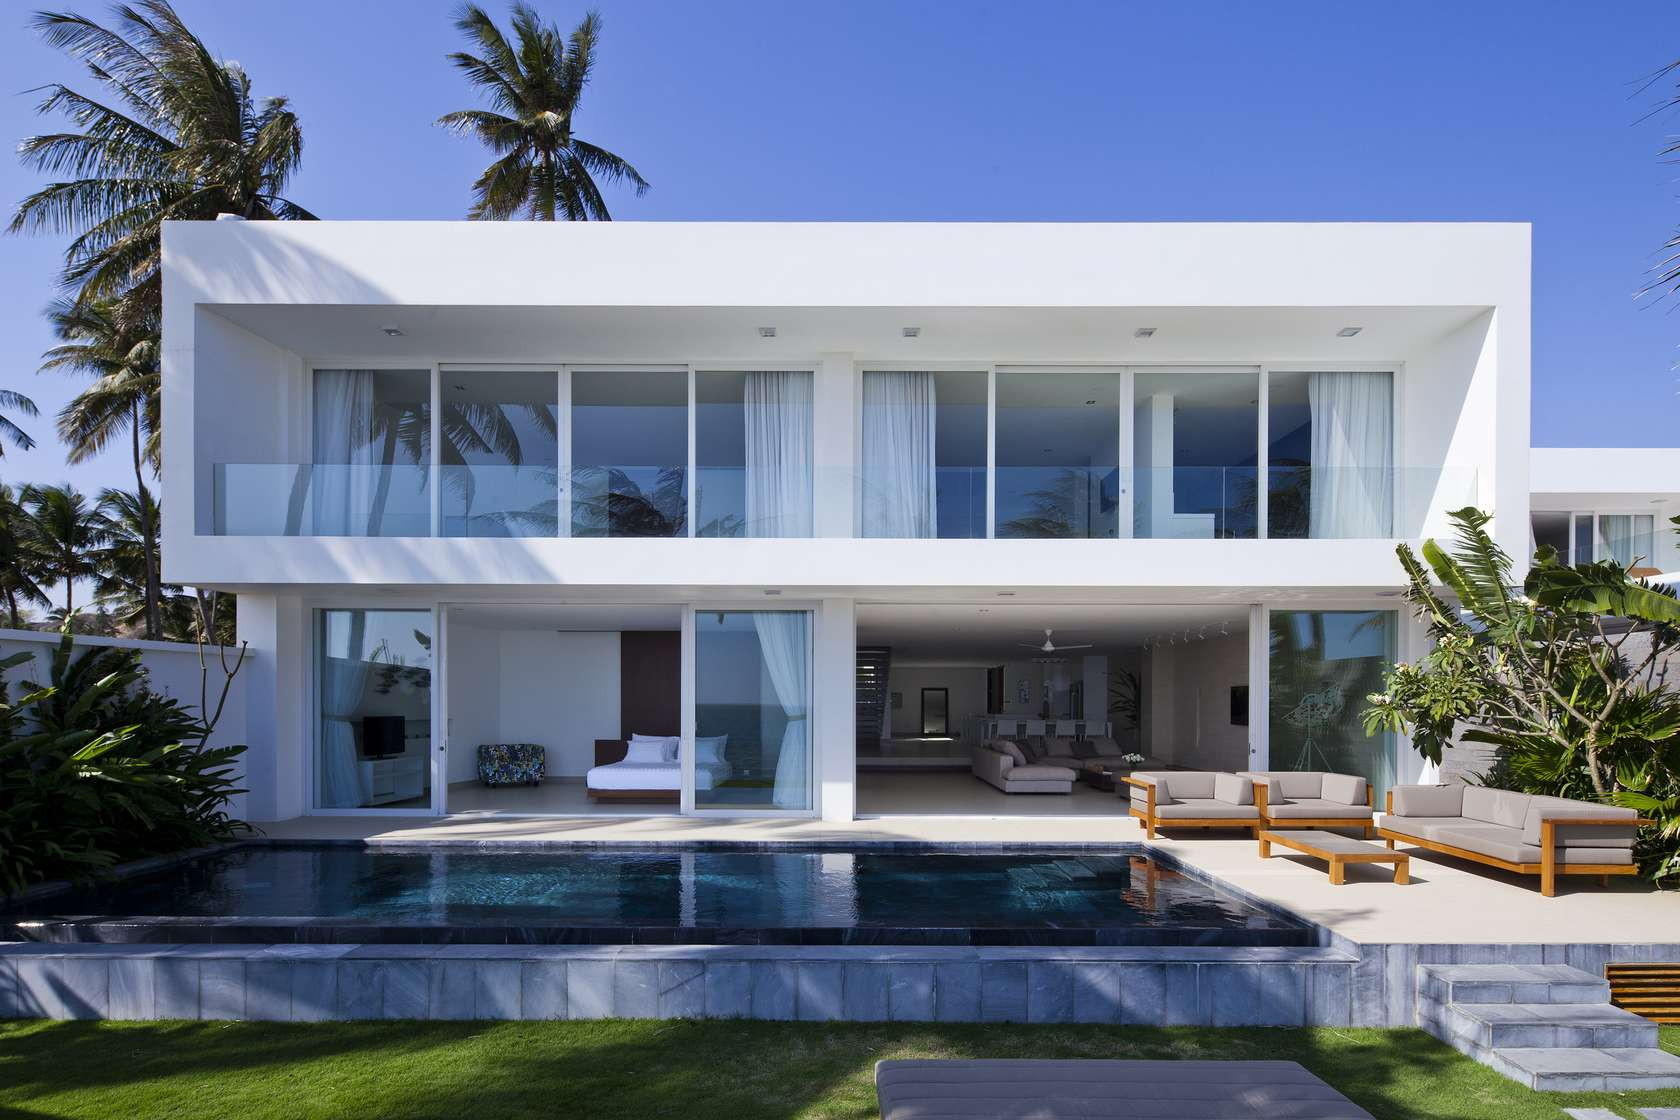 Private beach villas offer spectacular ocean views and for Beach house style